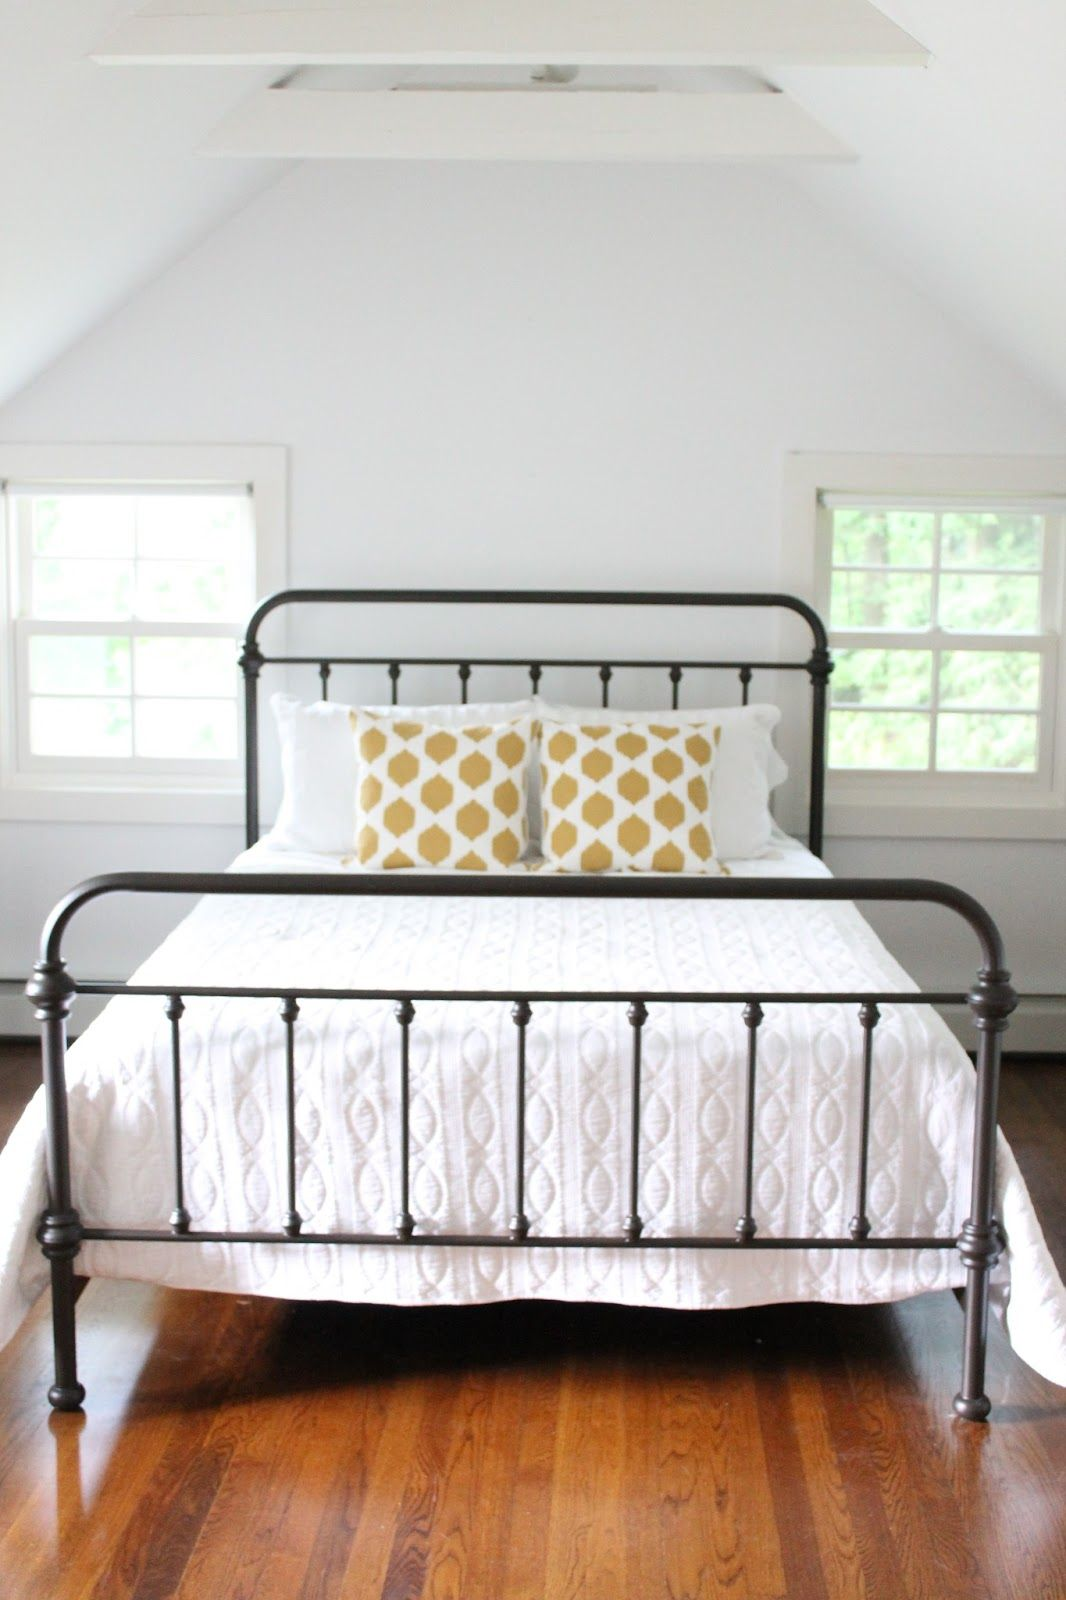 Iron Bed Home Home Bedroom Wrought Iron Beds E Cast Iron Beds